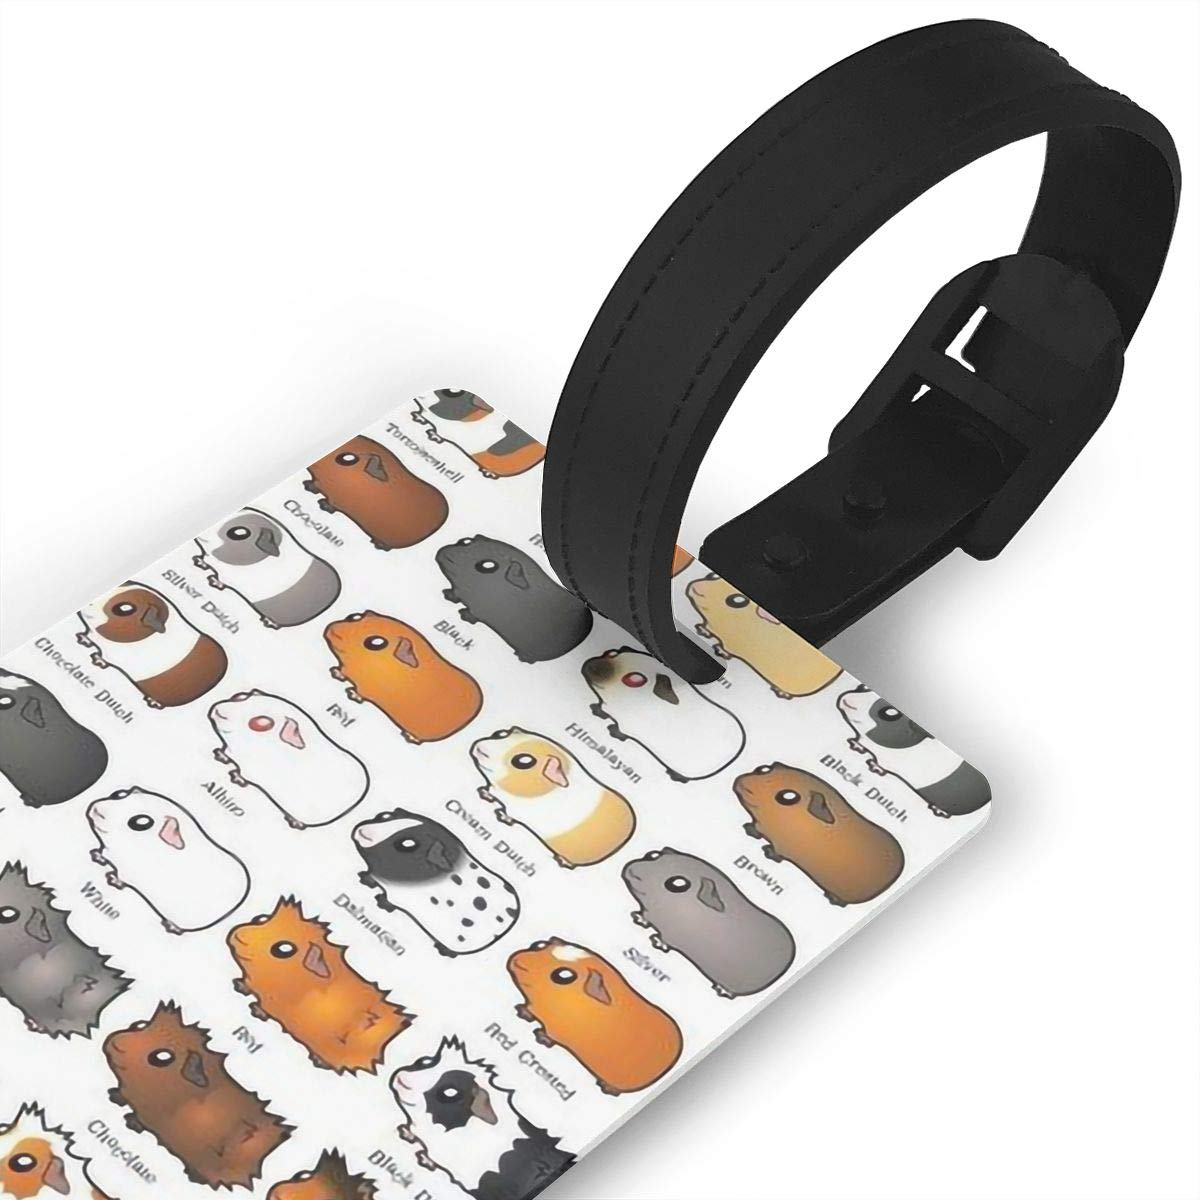 2 Pack Luggage Tags Guinea Pig Baggage Tag For Travel Tags Accessories